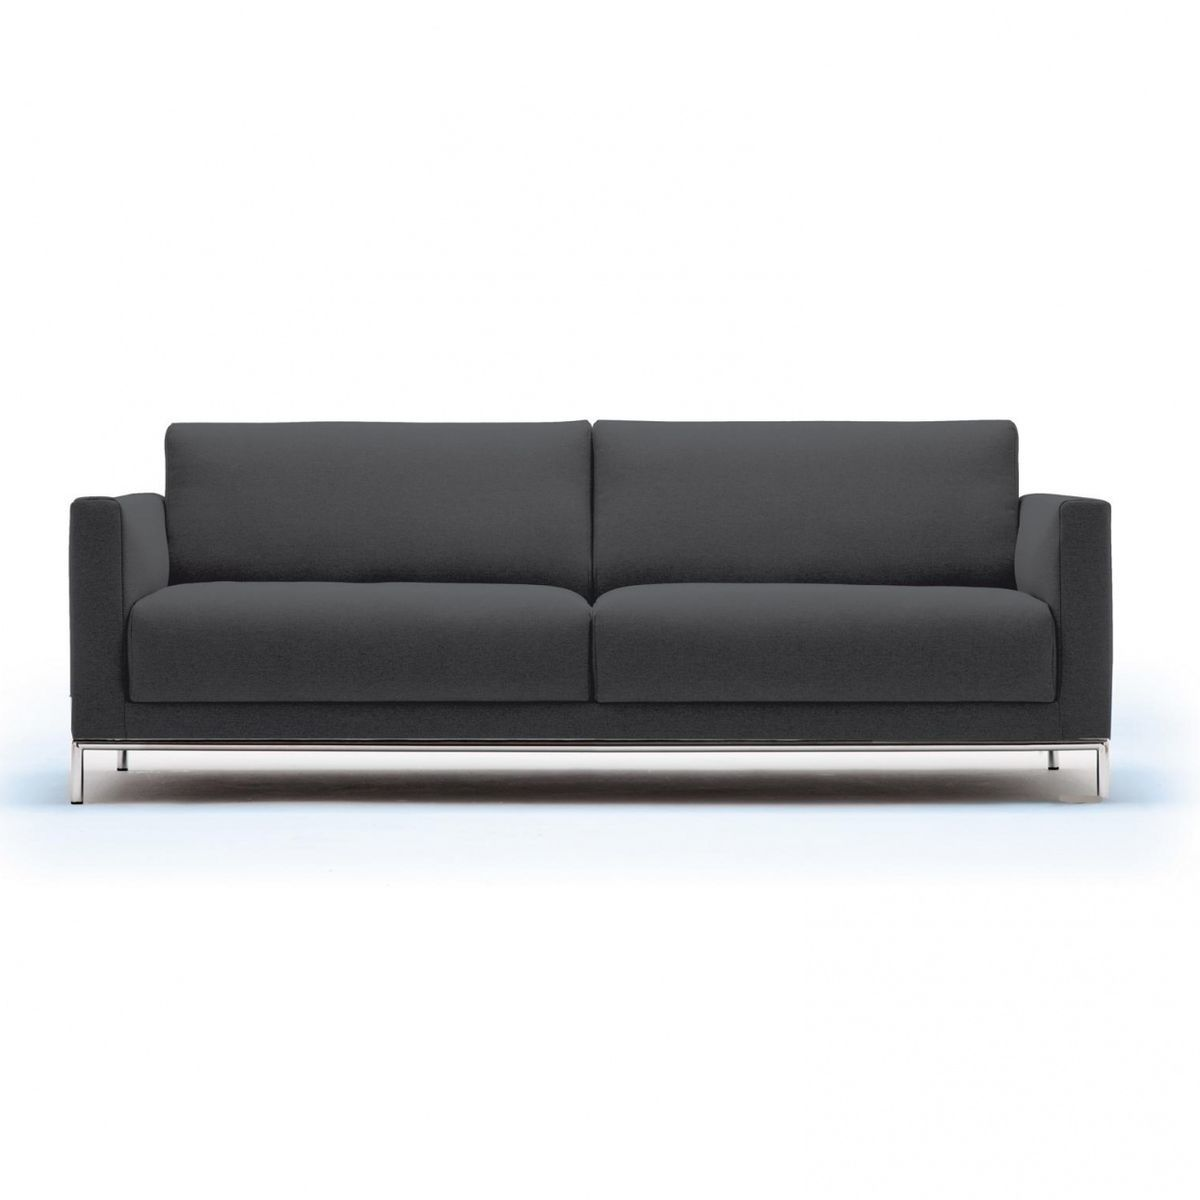 Ledersofa schwarz rolf benz  freistil 141 3-Seater Sofa Frame Chrome | freistil Rolf Benz ...